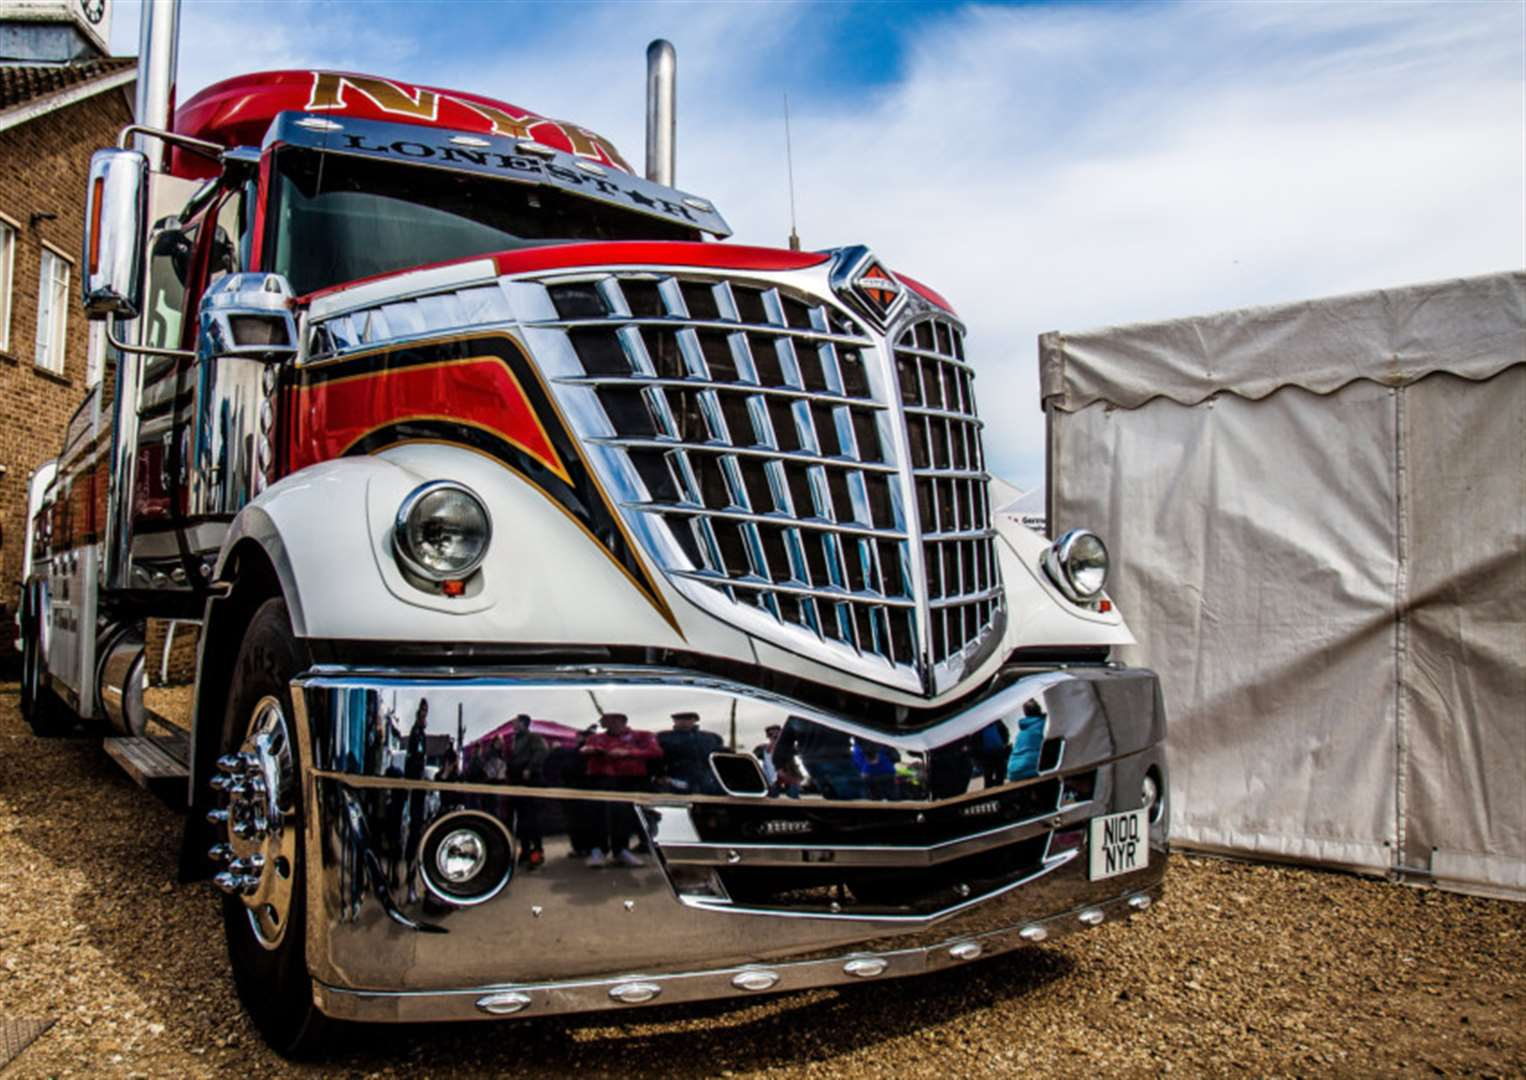 WHAT'S ON: Truckfest Original returns to its Newark birthplace